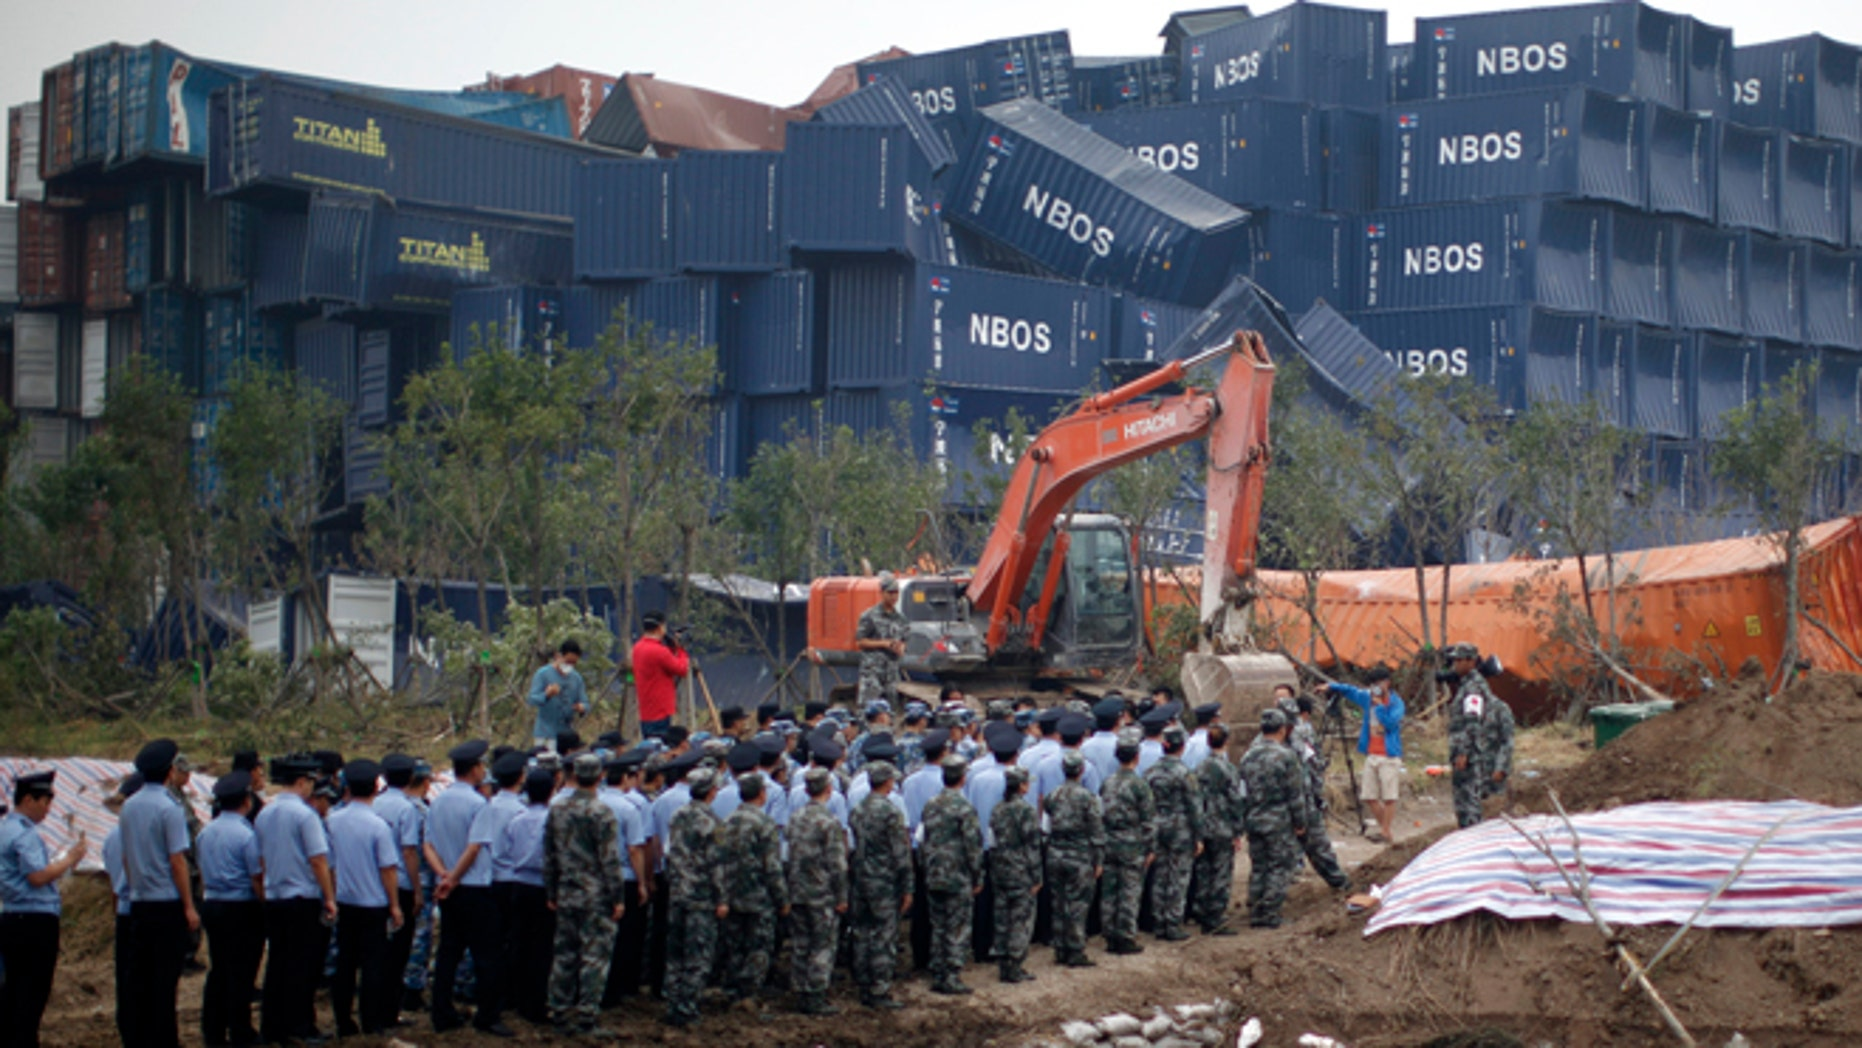 Aug. 18, 2015: Chinese soldiers, policemen and paramilitary policemen attend a memorial service for victims of the Tianjin blasts near the disaster's epicenter in northeastern China's Tianjin municipality.